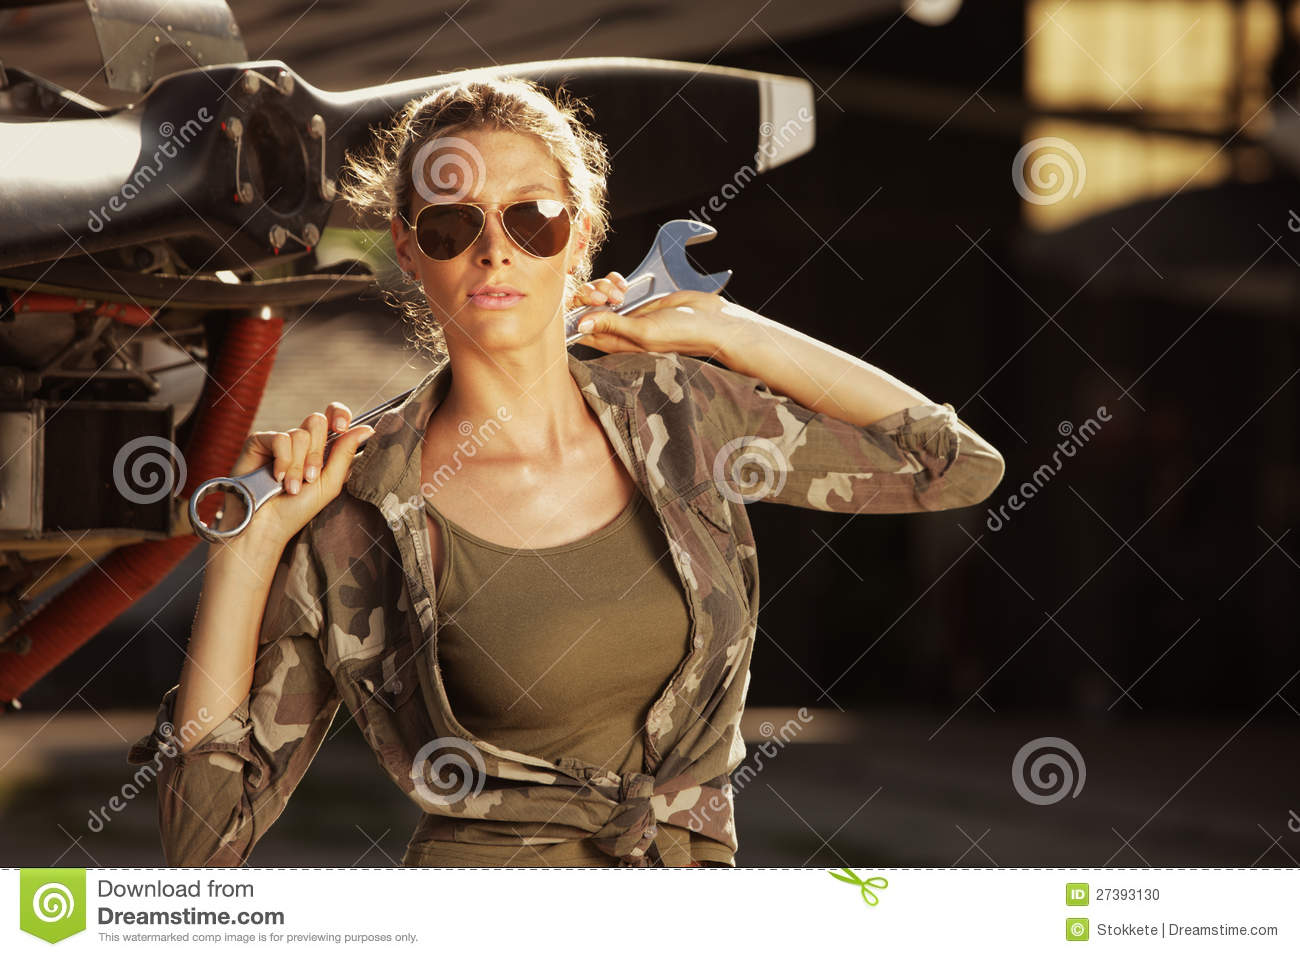 Army Pin Up Girl Wallpaper Fashion Female Airplane Mechanic Stock Photo Image Of